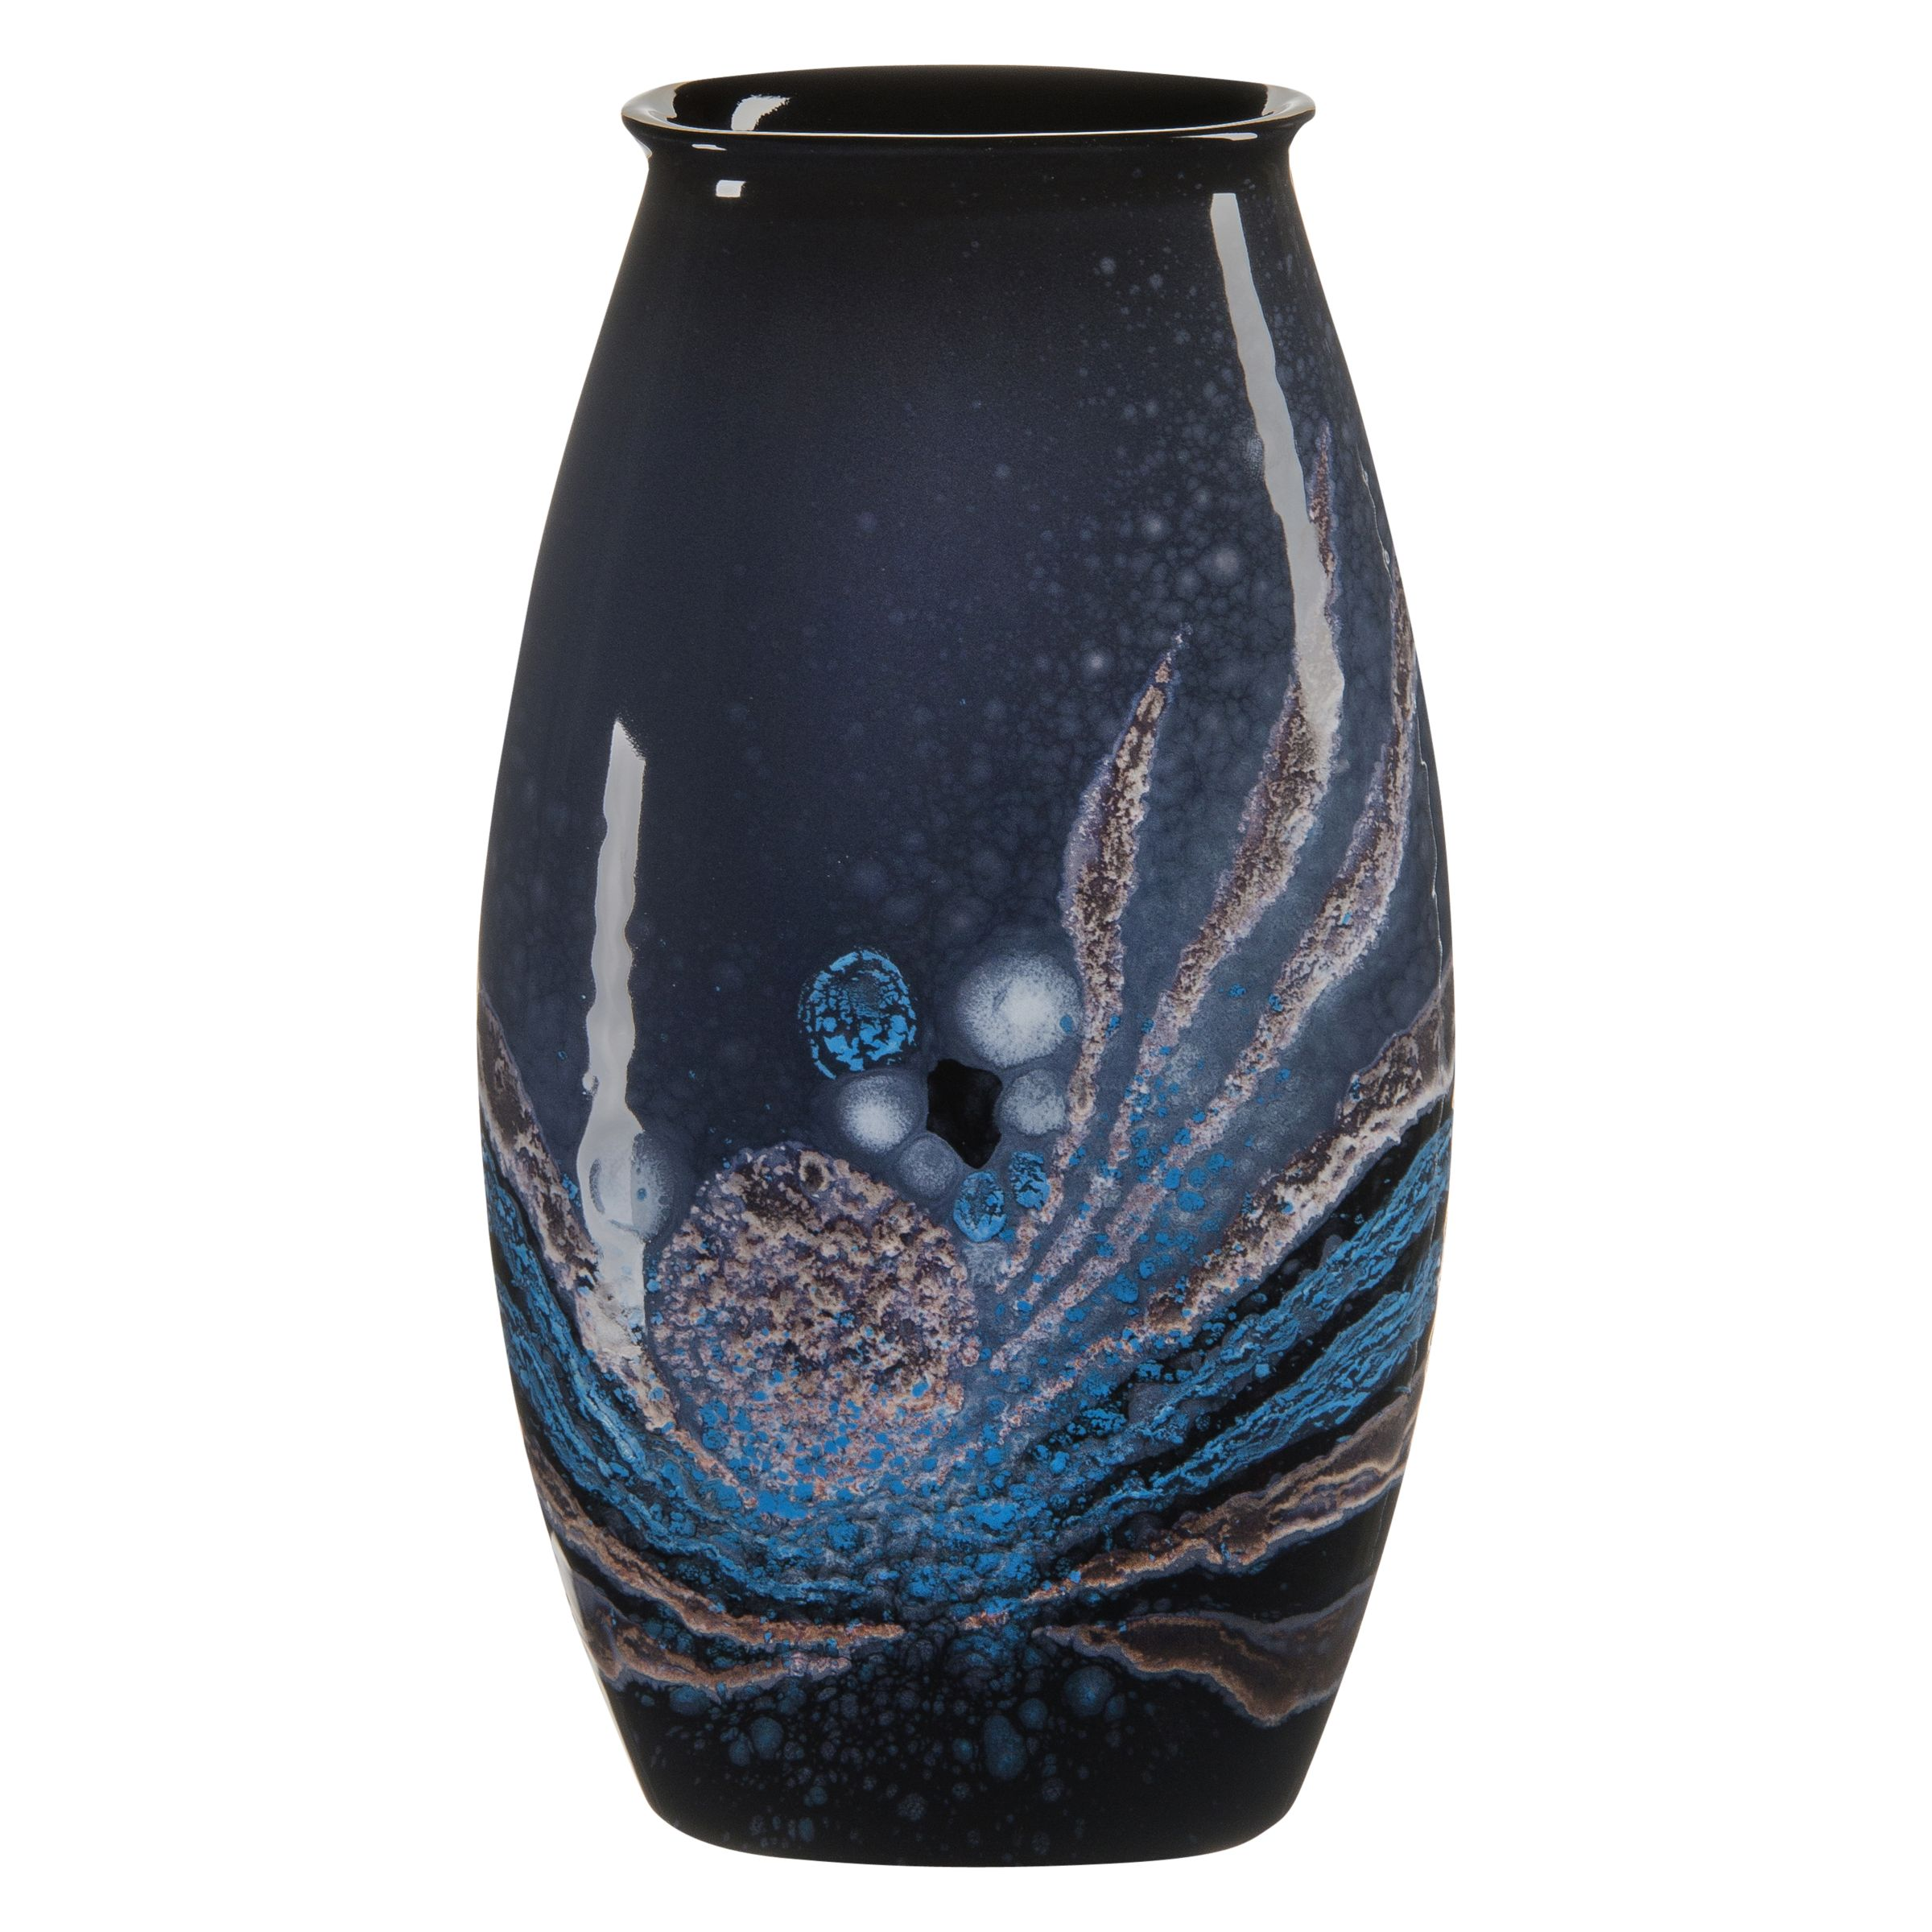 Poole Pottery Poole Pottery Celestial Manhattan Vase, H26cm, Grey/ Blue